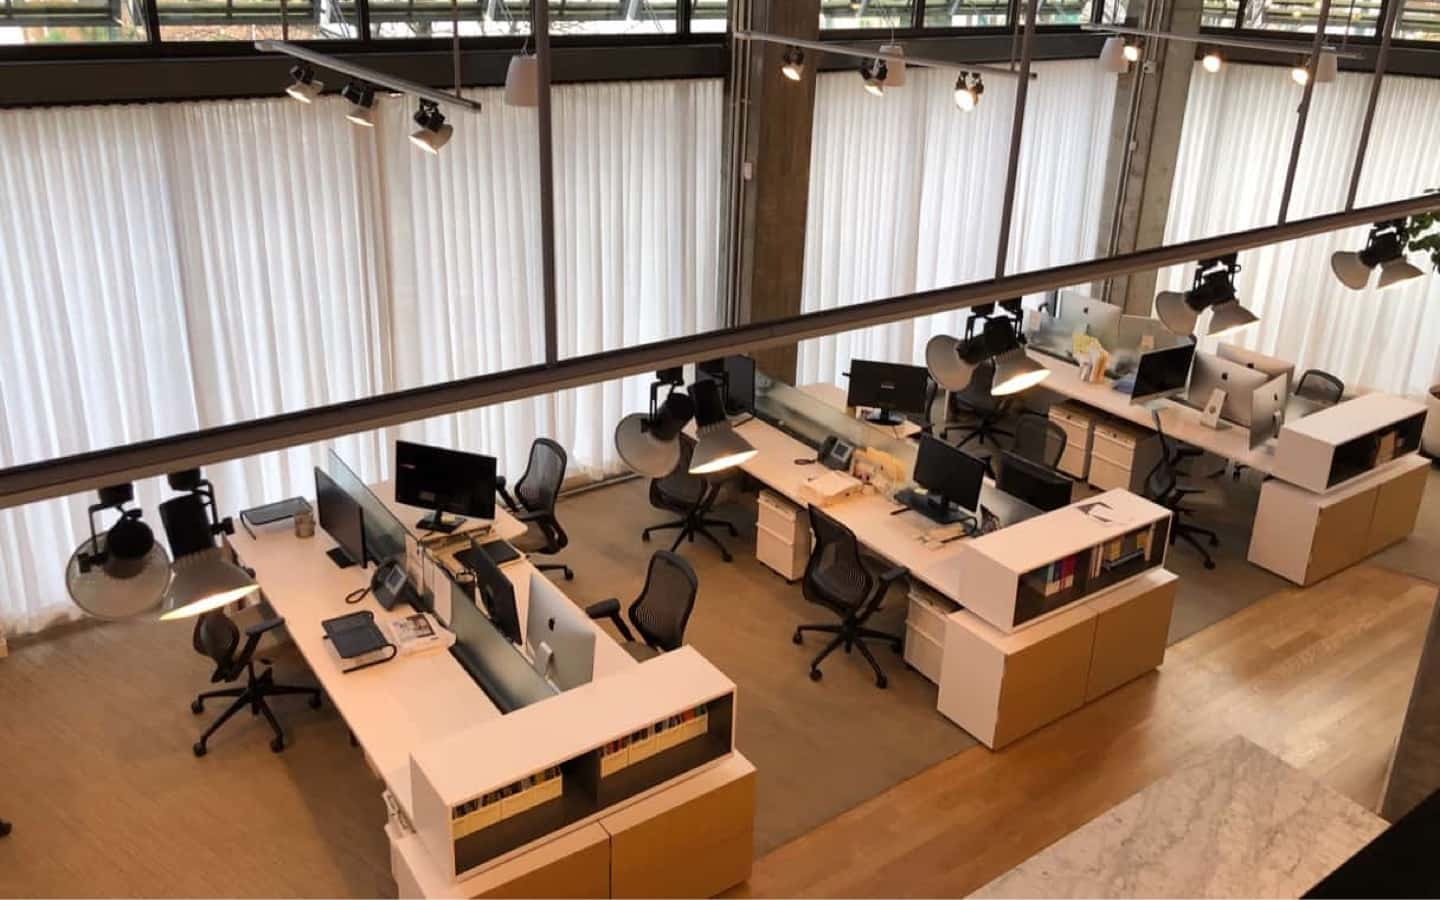 A view of the Rivers office with computers and empty desks